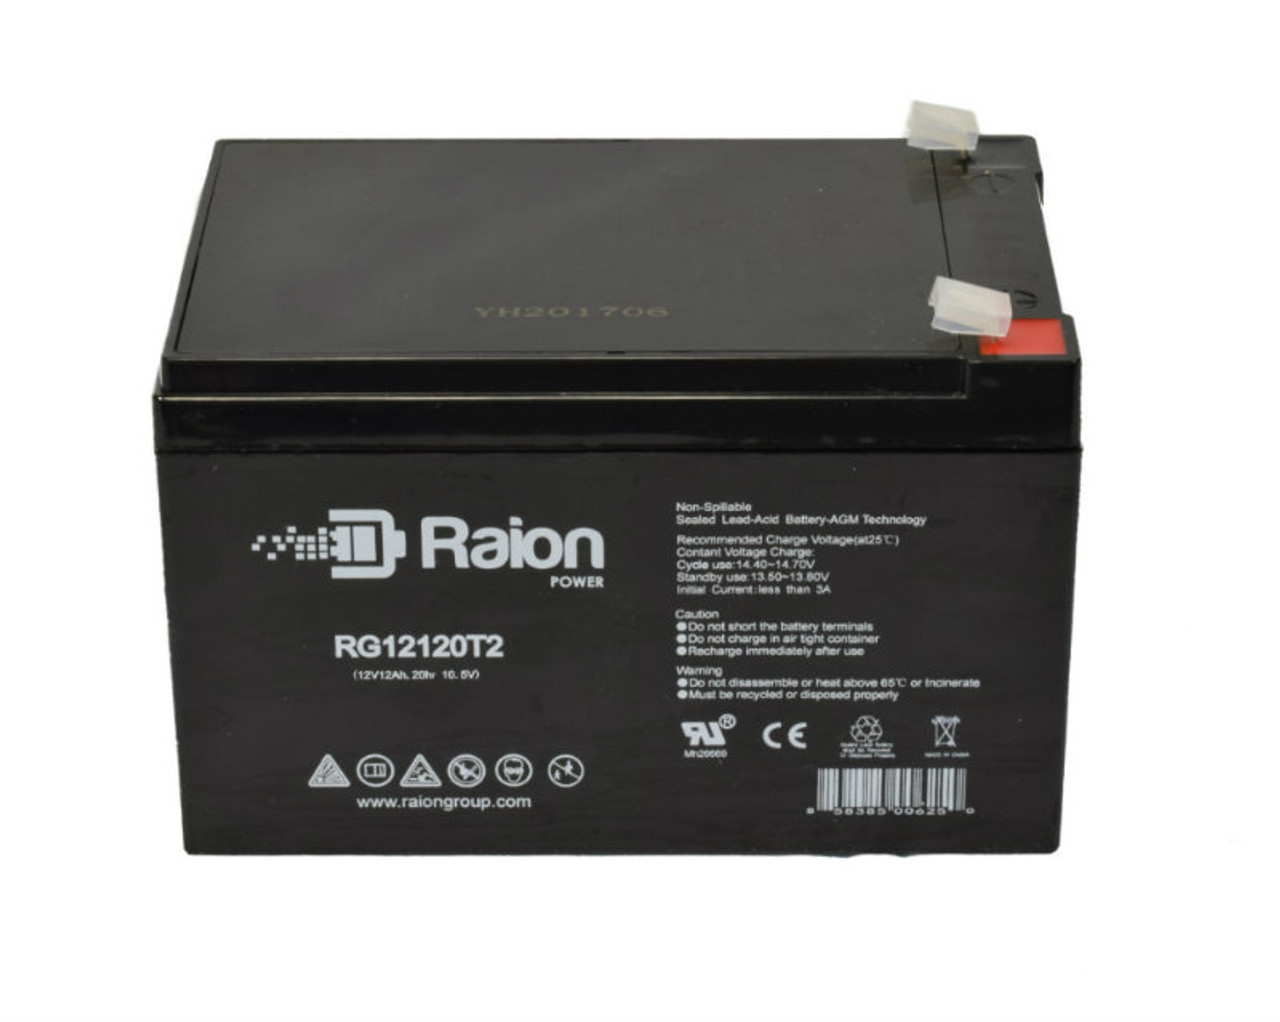 Raion Power RG12120T2 SLA Battery for ActiveCare Medical Spitfire 1420 Wheelchairs